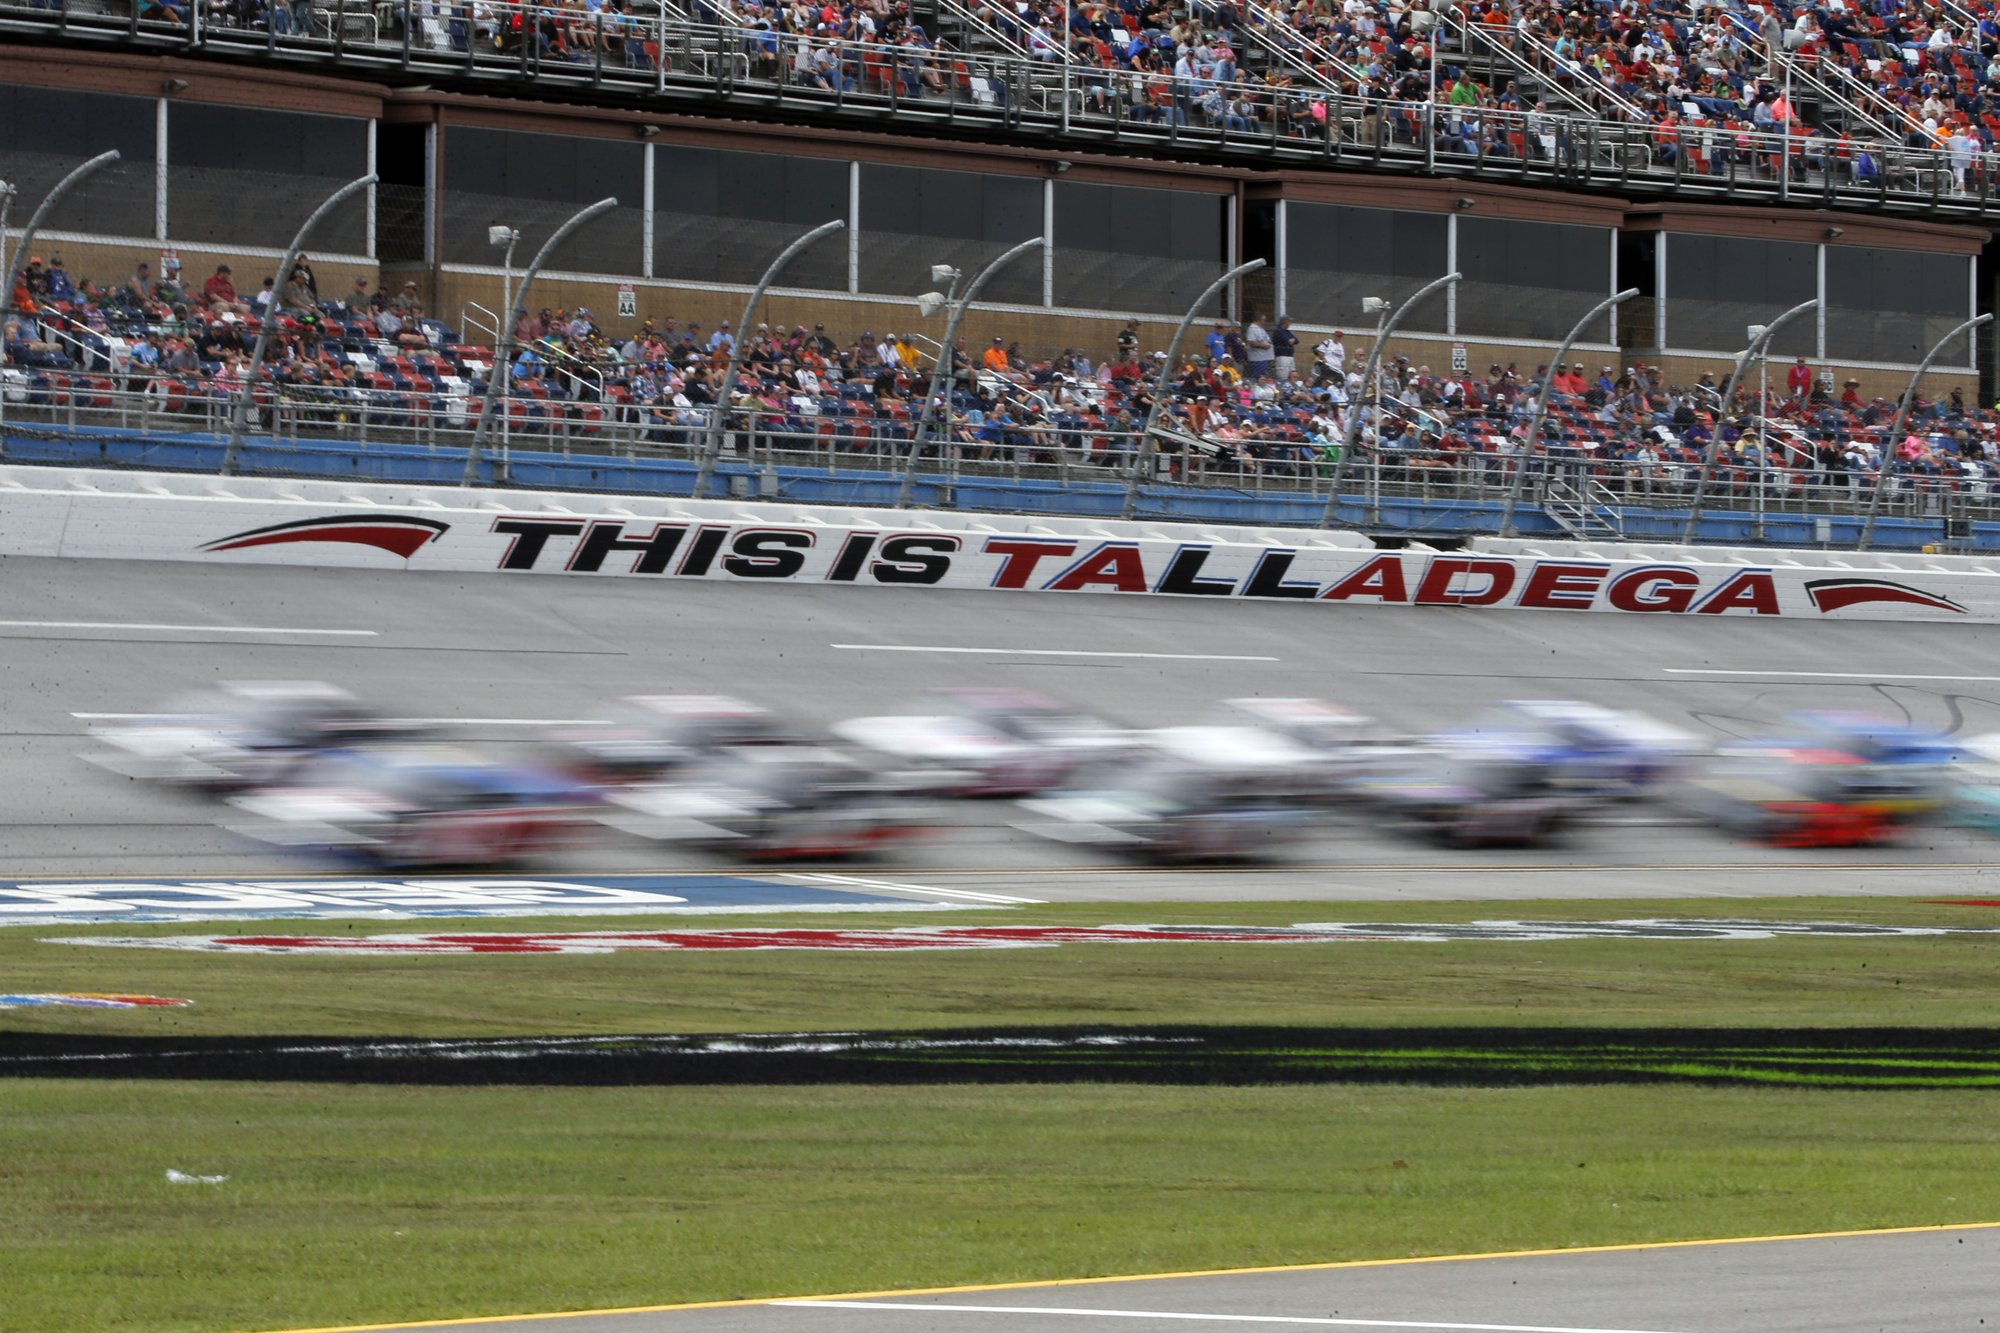 Chevy vs. Ford vs. Toyota at Talladega playoff race